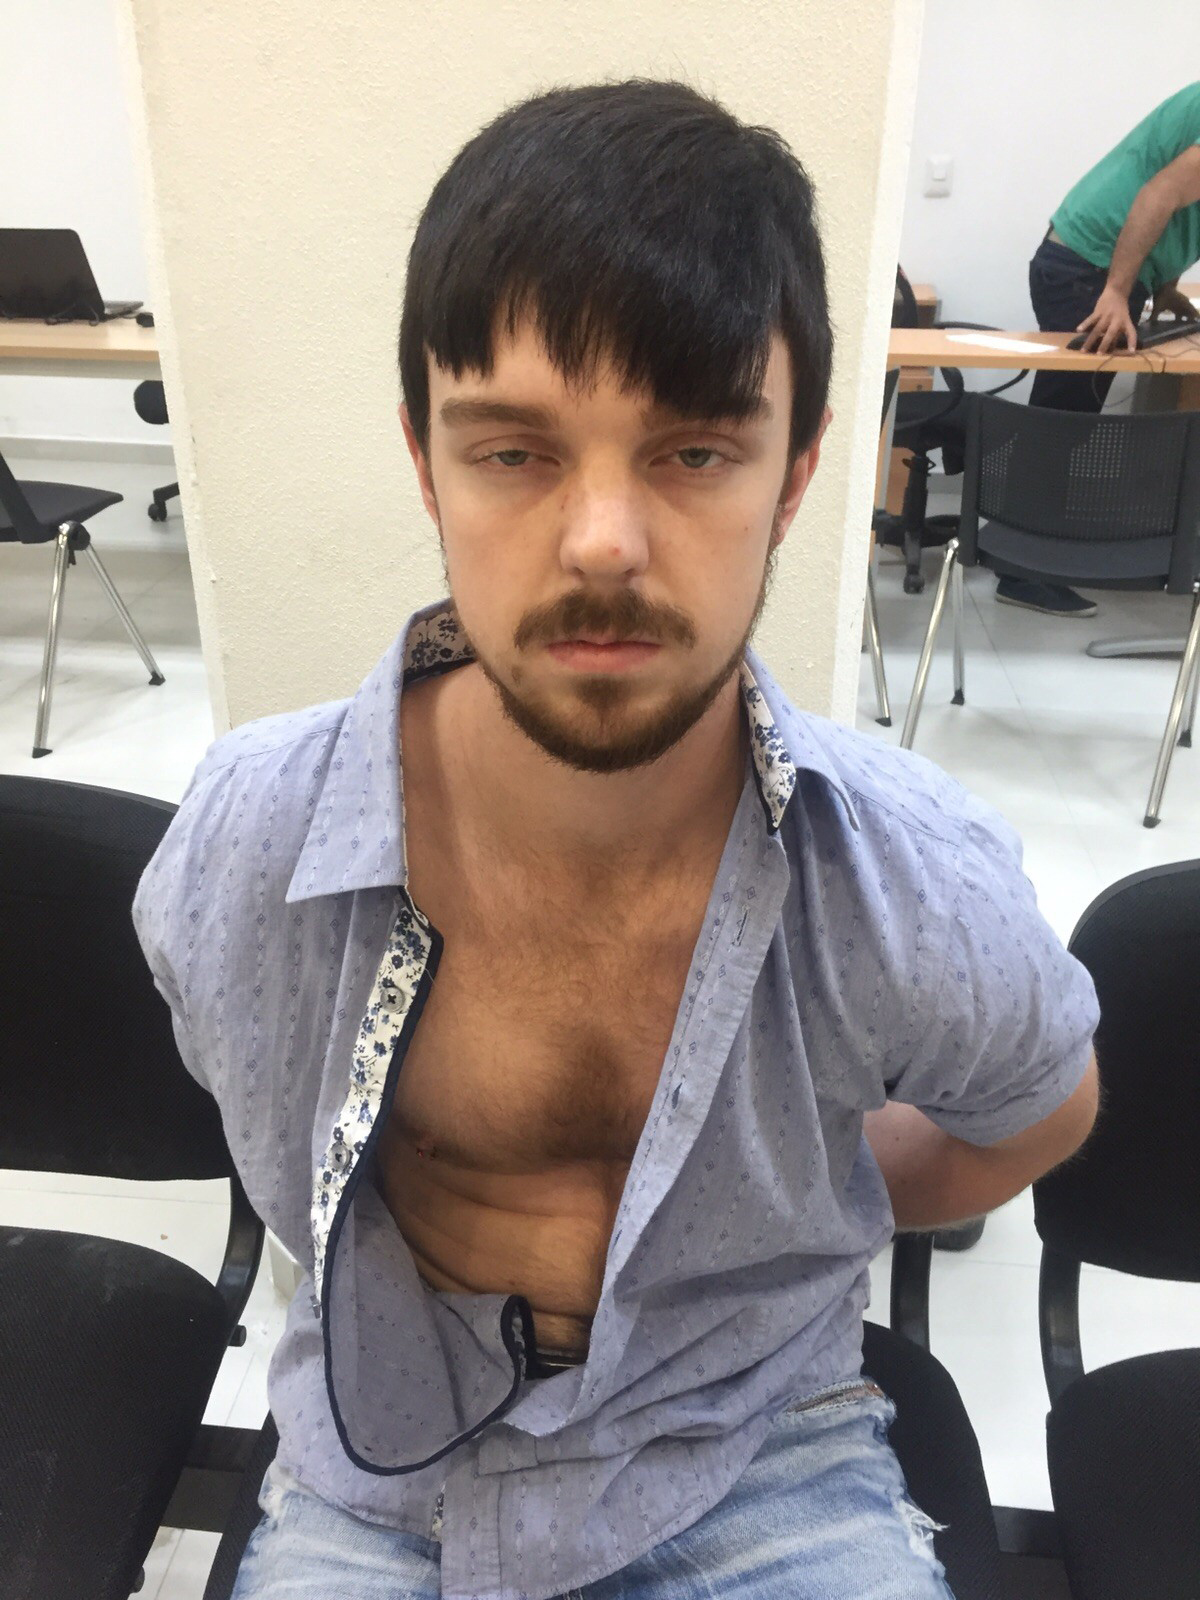 Authorities identify Ethan Couch after he was taken into custody in Puerto Vallarta, Mexico. Dec. 28, 2015.